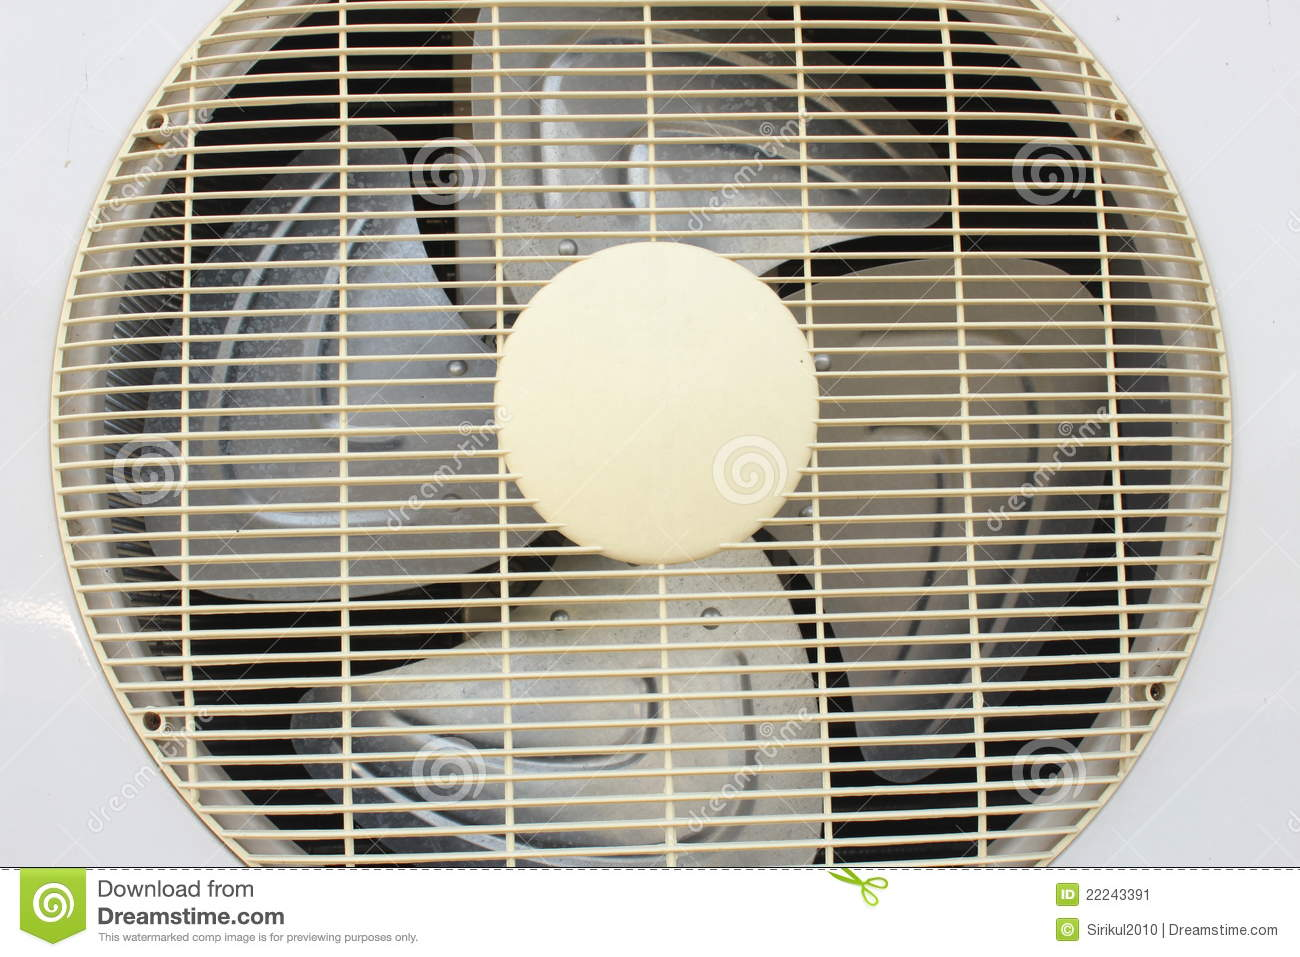 #81A229 Air Conditioner Fan Stock Image Image: 22243391 Recommended 10117 Air Conditioned Fan pics with 1300x957 px on helpvideos.info - Air Conditioners, Air Coolers and more